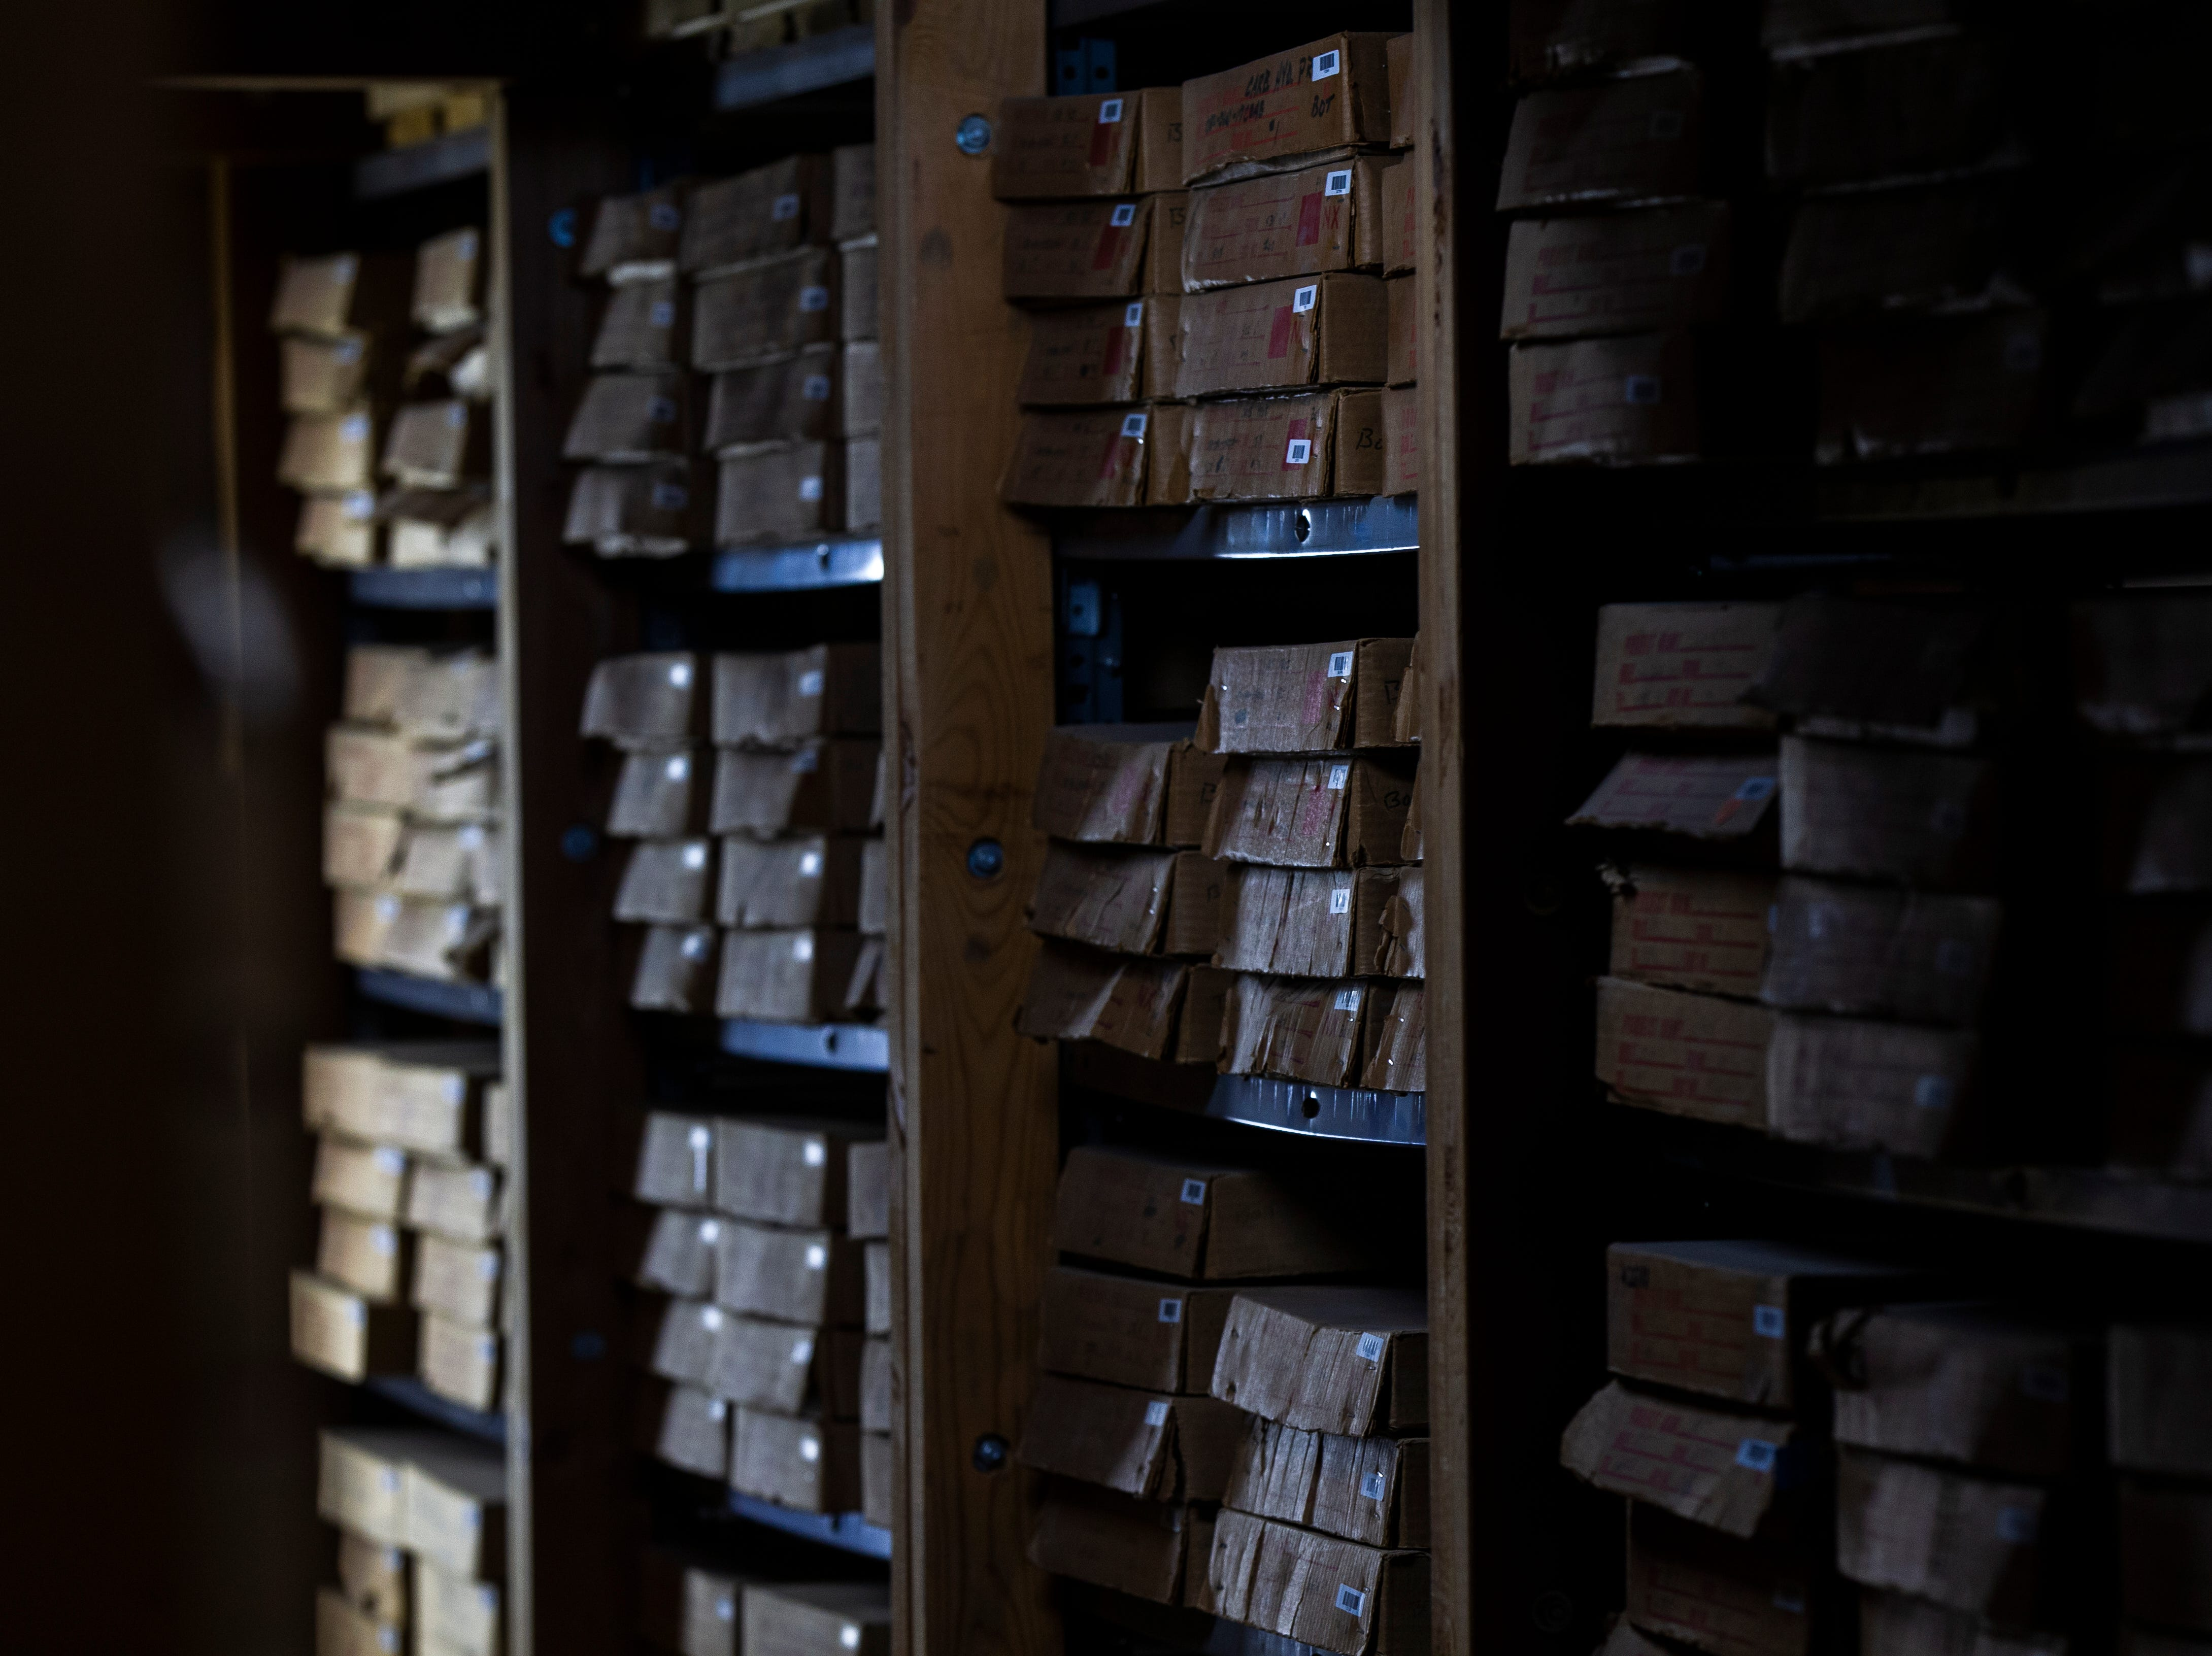 An aisle of the library of rock core samples is seen on Monday, Jan. 7, 2019, at the Iowa Geological Survey offices in the at UI Oakdale Research Campus in Coralville, Iowa.